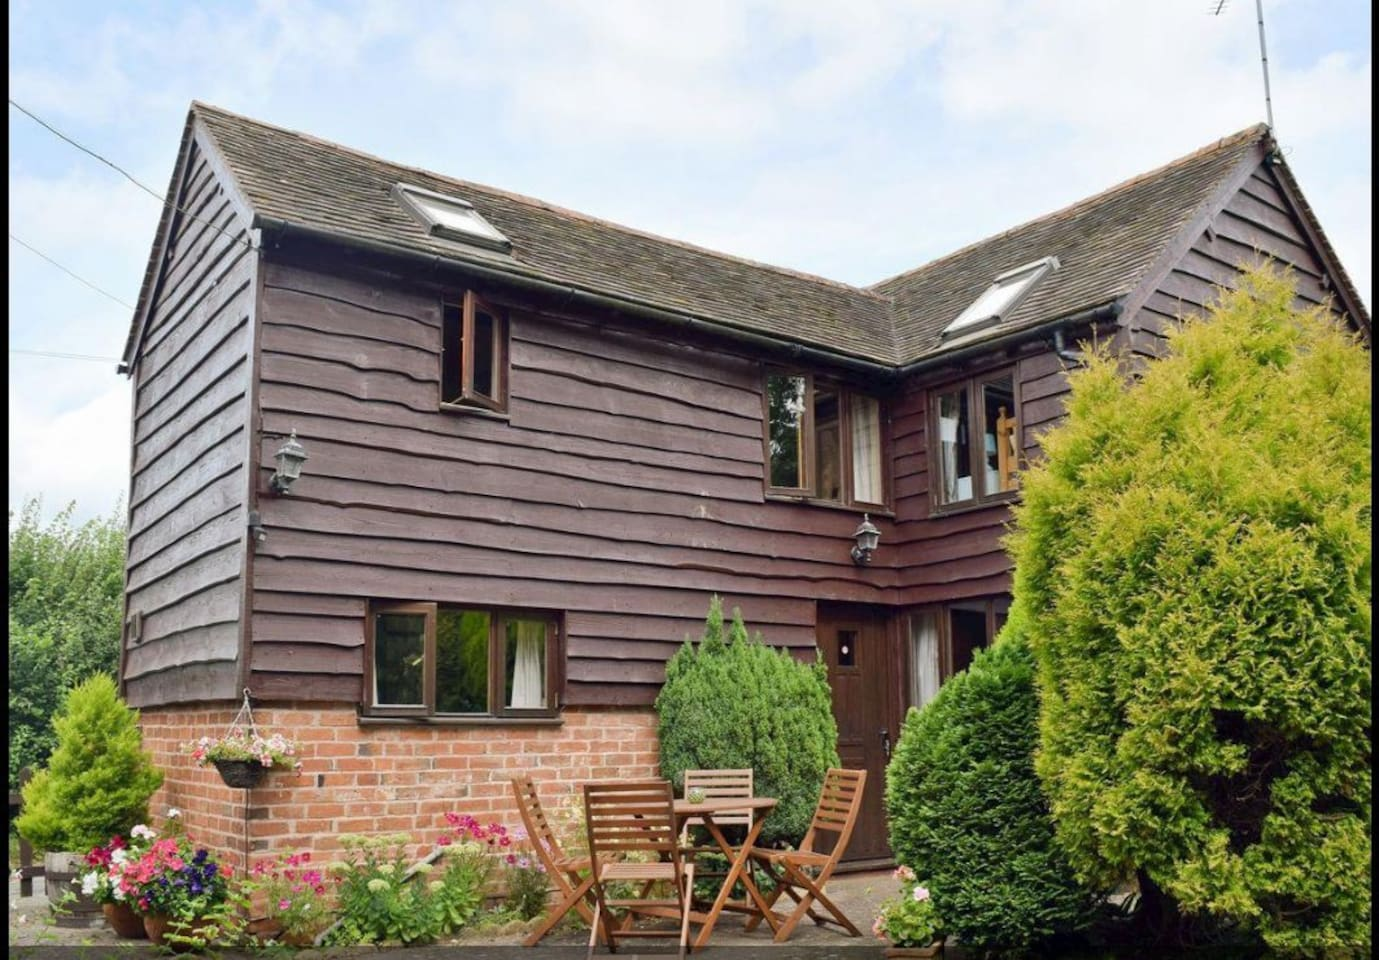 The Barn is a detached property situated in a rural country setting with access to many footpaths, surrounded by farmland. 2.5 miles from Ragley Hall. Convenient for exploring Stratford, Cotswolds, Cheltenham, Warwick and NEC.